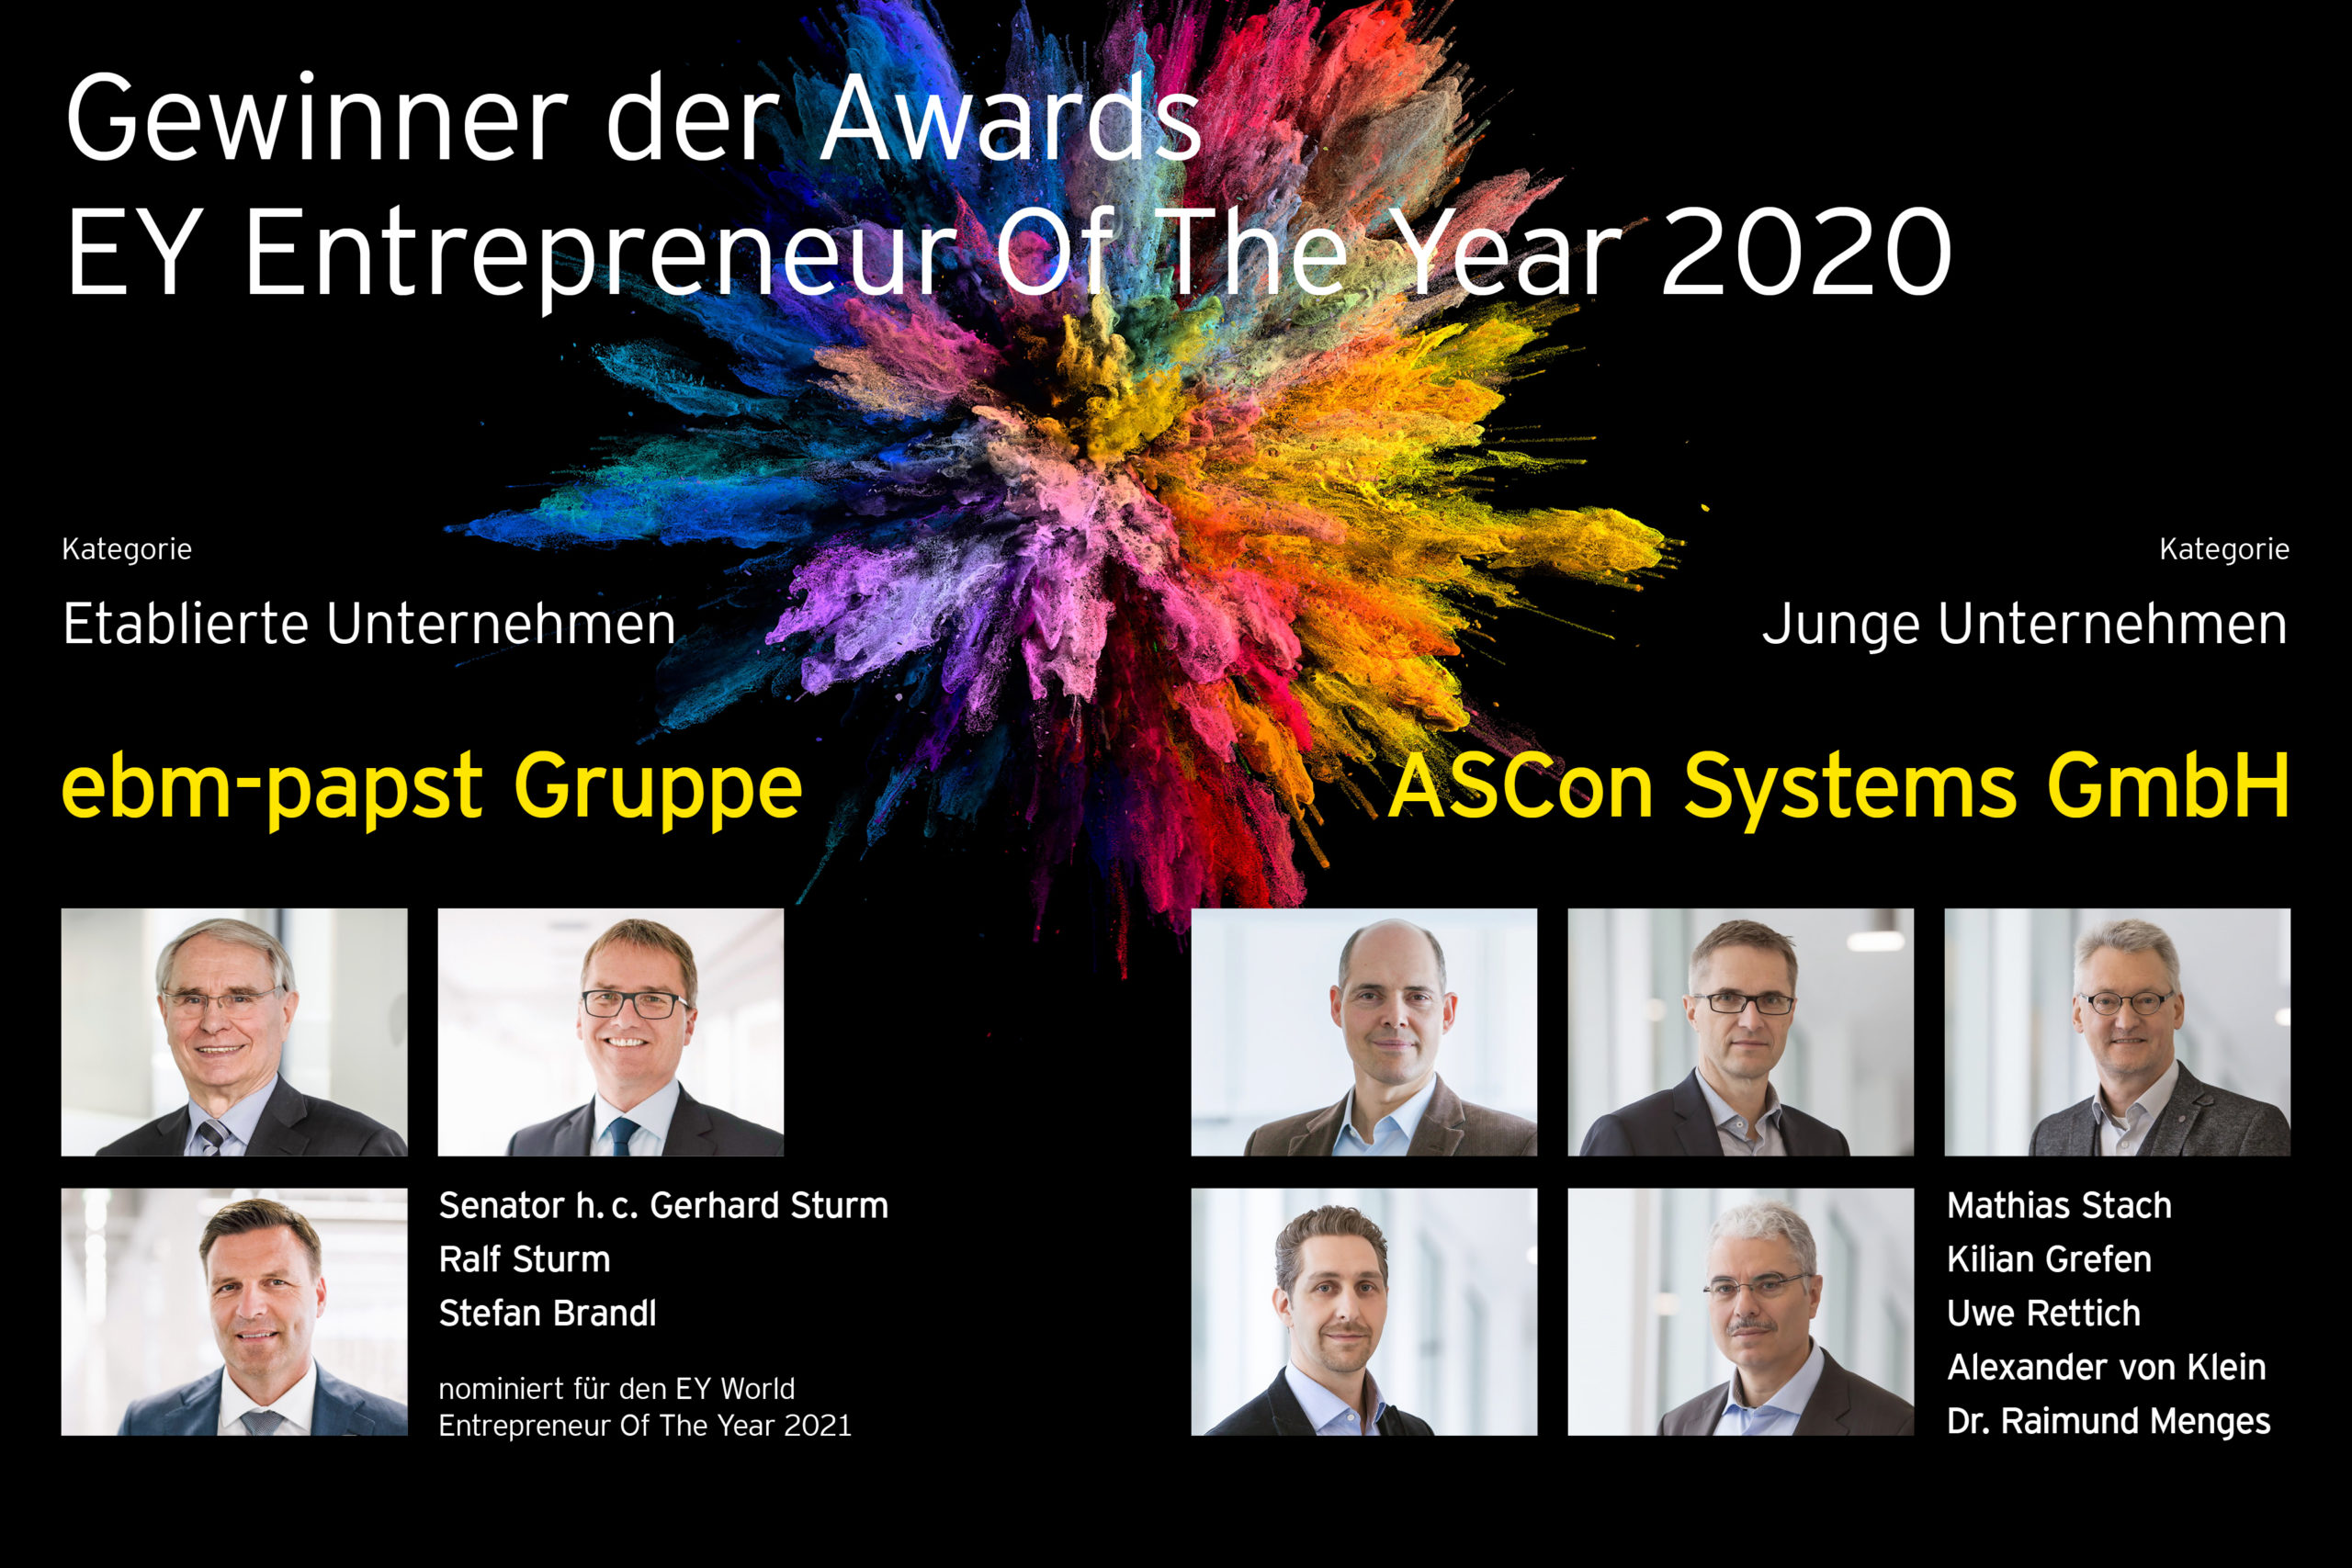 Winner of the EY Entrepreneur of the Year 2020 in the FAZ